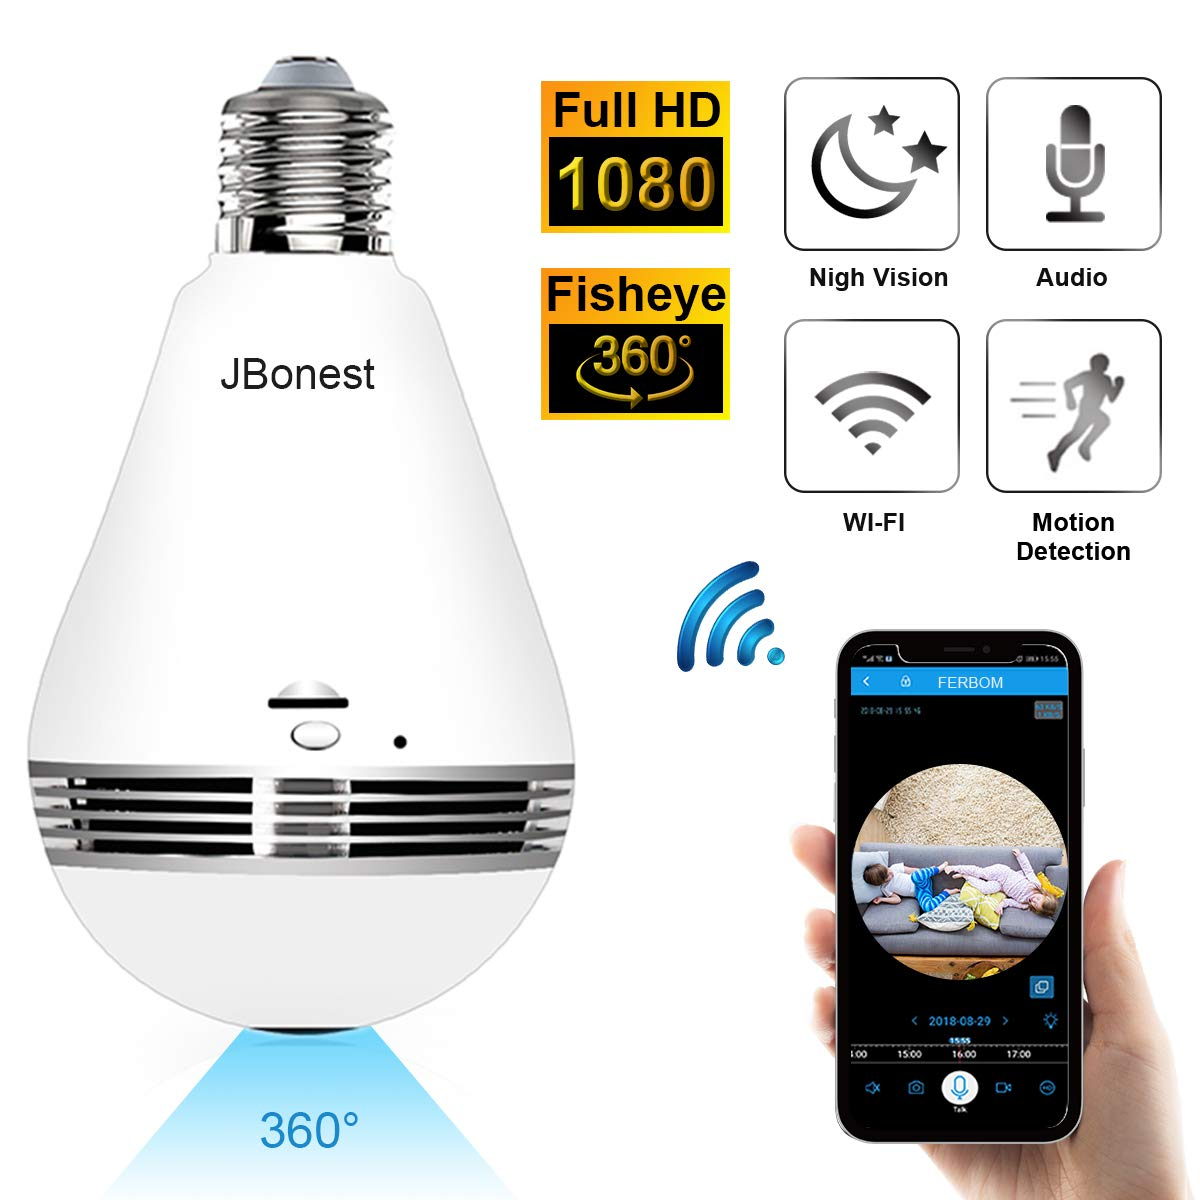 JBonest 1080P WiFi Camera Light Bulb Panoramic Camera with IR Motion Detection, Night Vision, Two-Way Audio, Cloud Service for Home, Office, Baby, Pet Monitor by JBonest